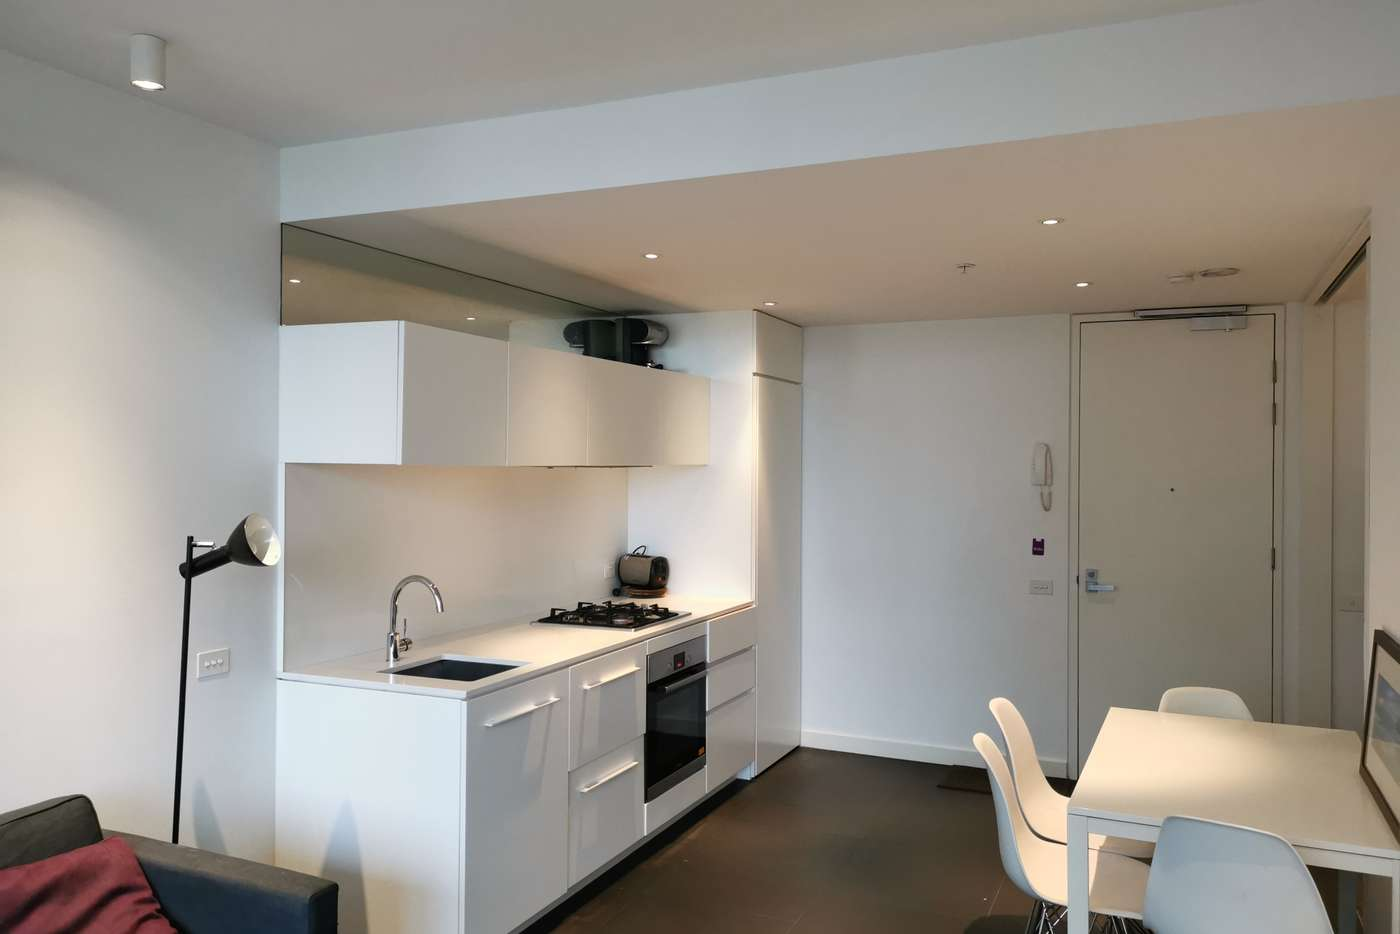 Main view of Homely house listing, 1718/39 Coventry Street, Southbank VIC 3006